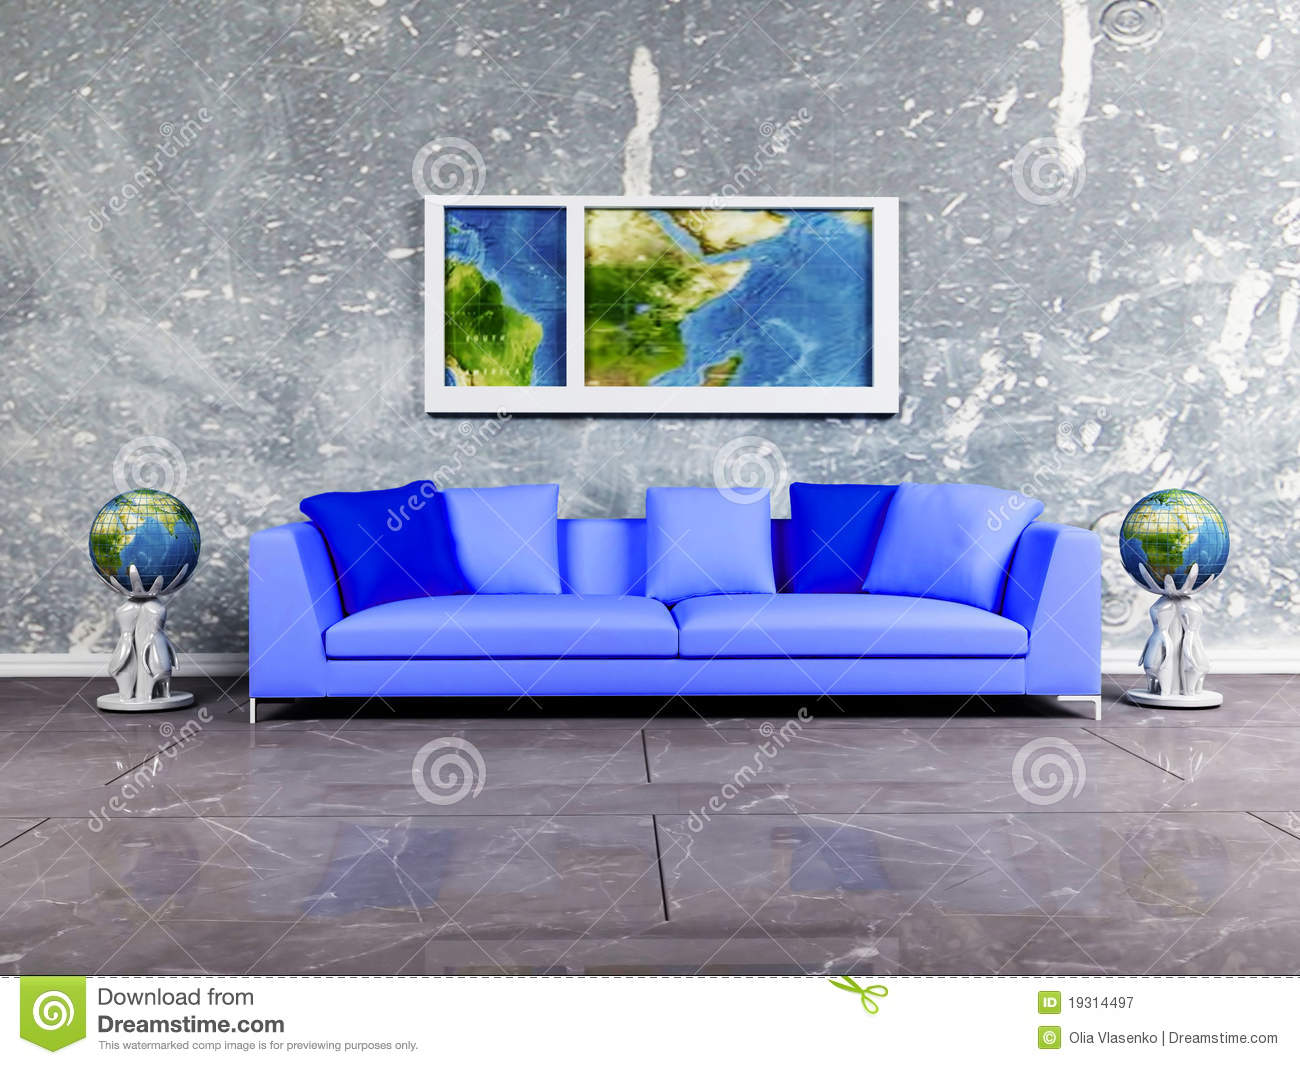 Royalty free stock photography modern interior design of living room